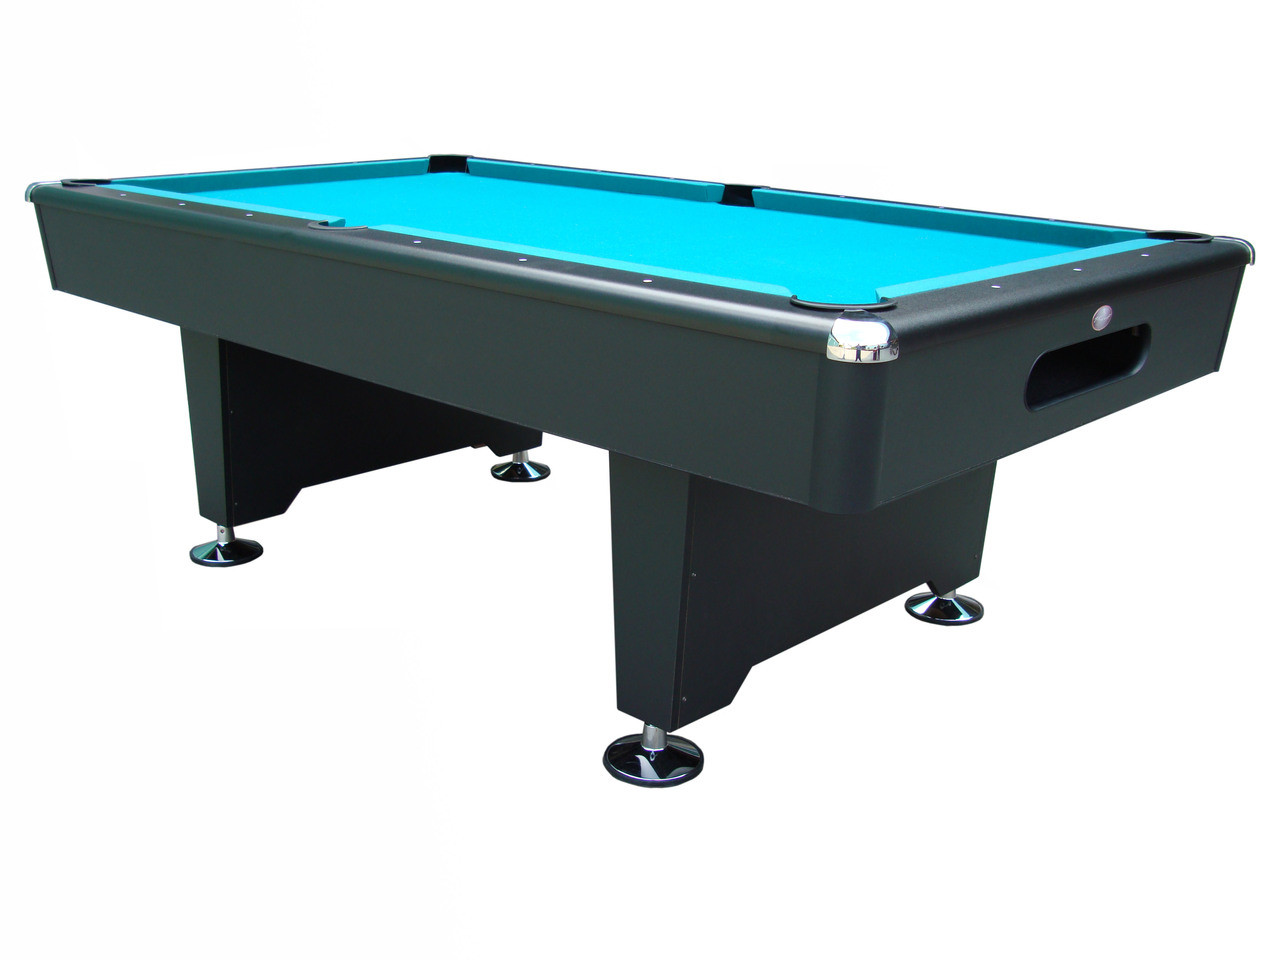 p table sportcraft rack prod wid hei springdale billiard qlt with accessory